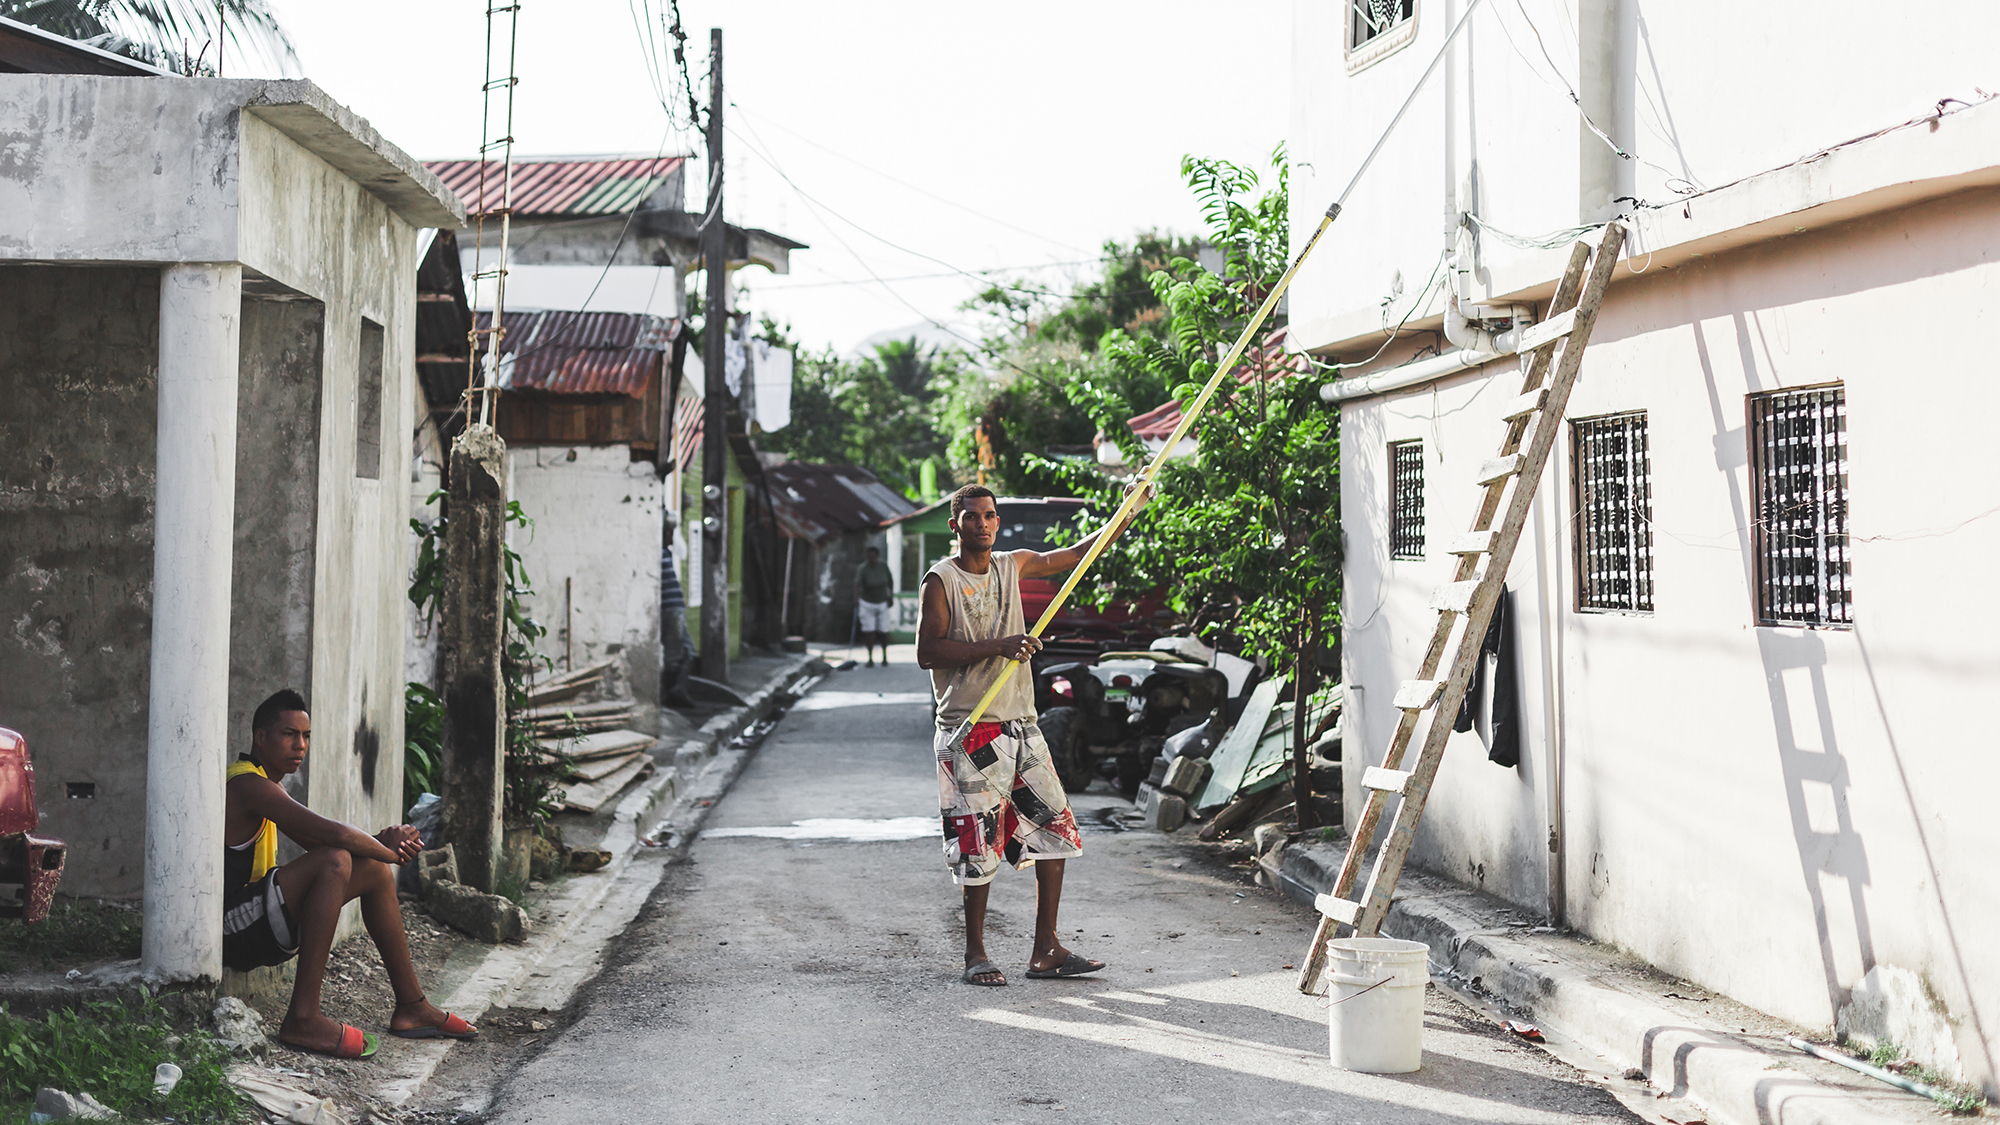 man standing in a street in Dominican Republic